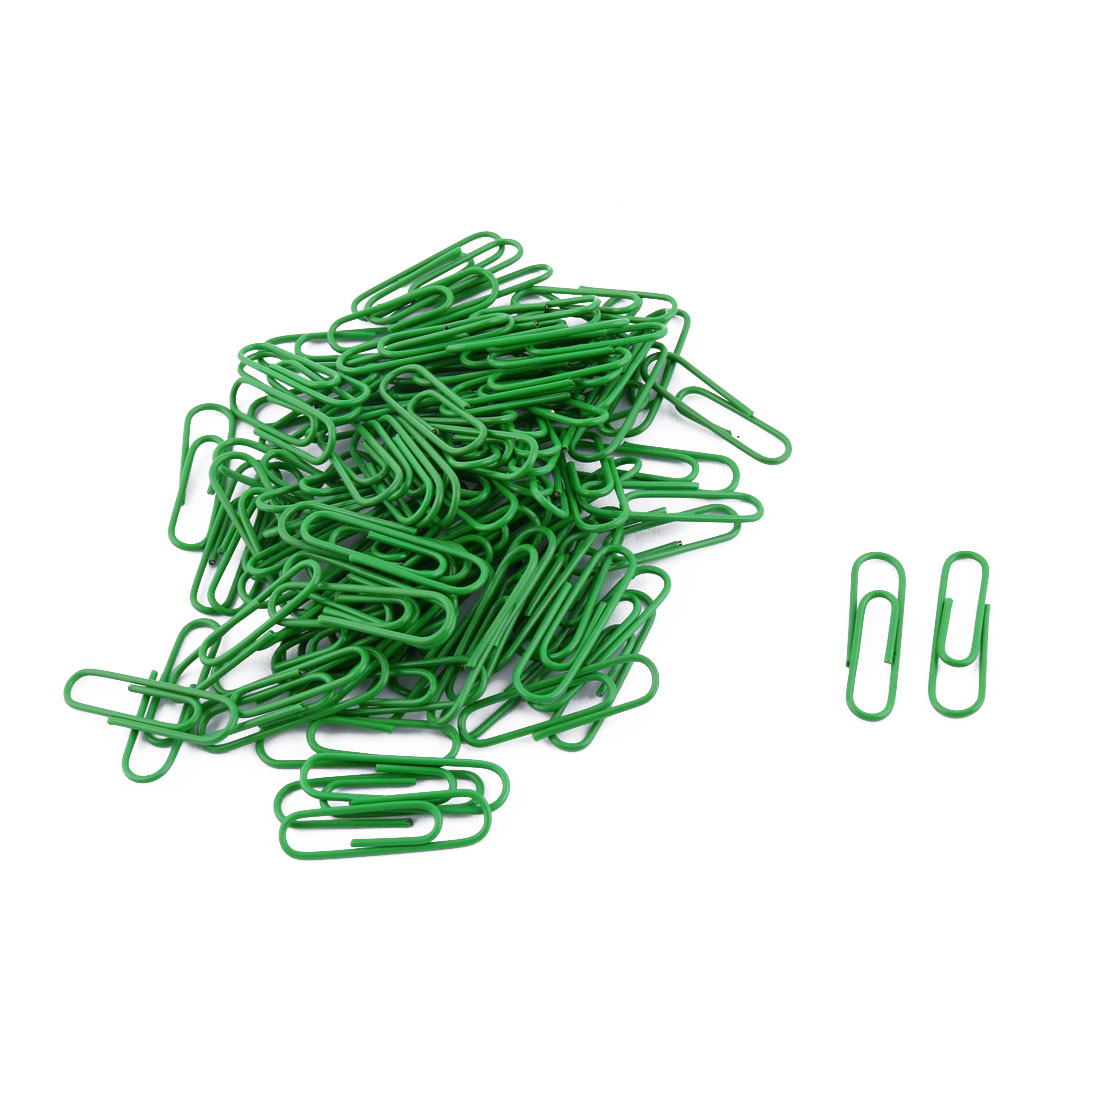 Officer Plastic Coated Metal Label Bookmark Paper Clips Clamps Green 105 Pcs